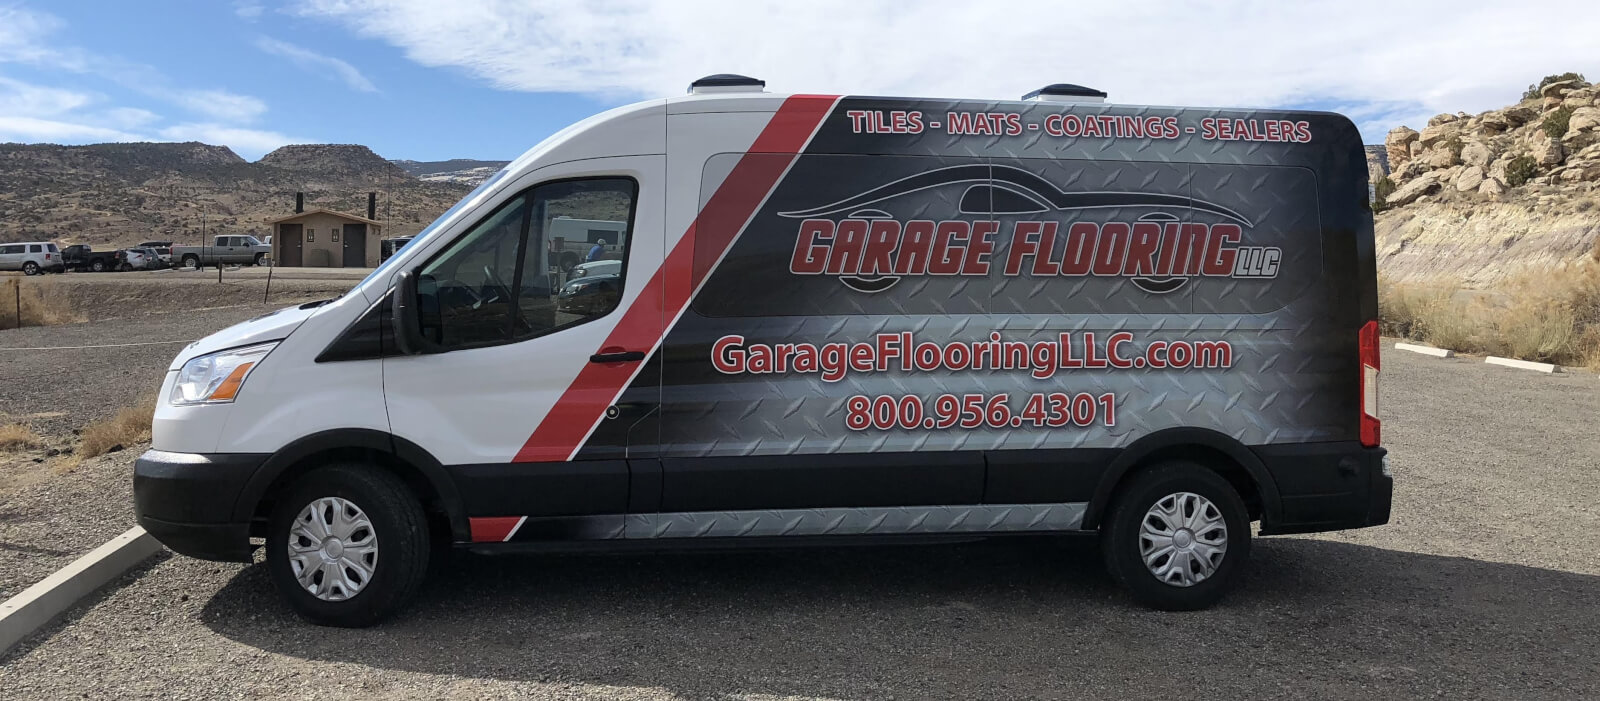 Garage Flooring -- Local Deals